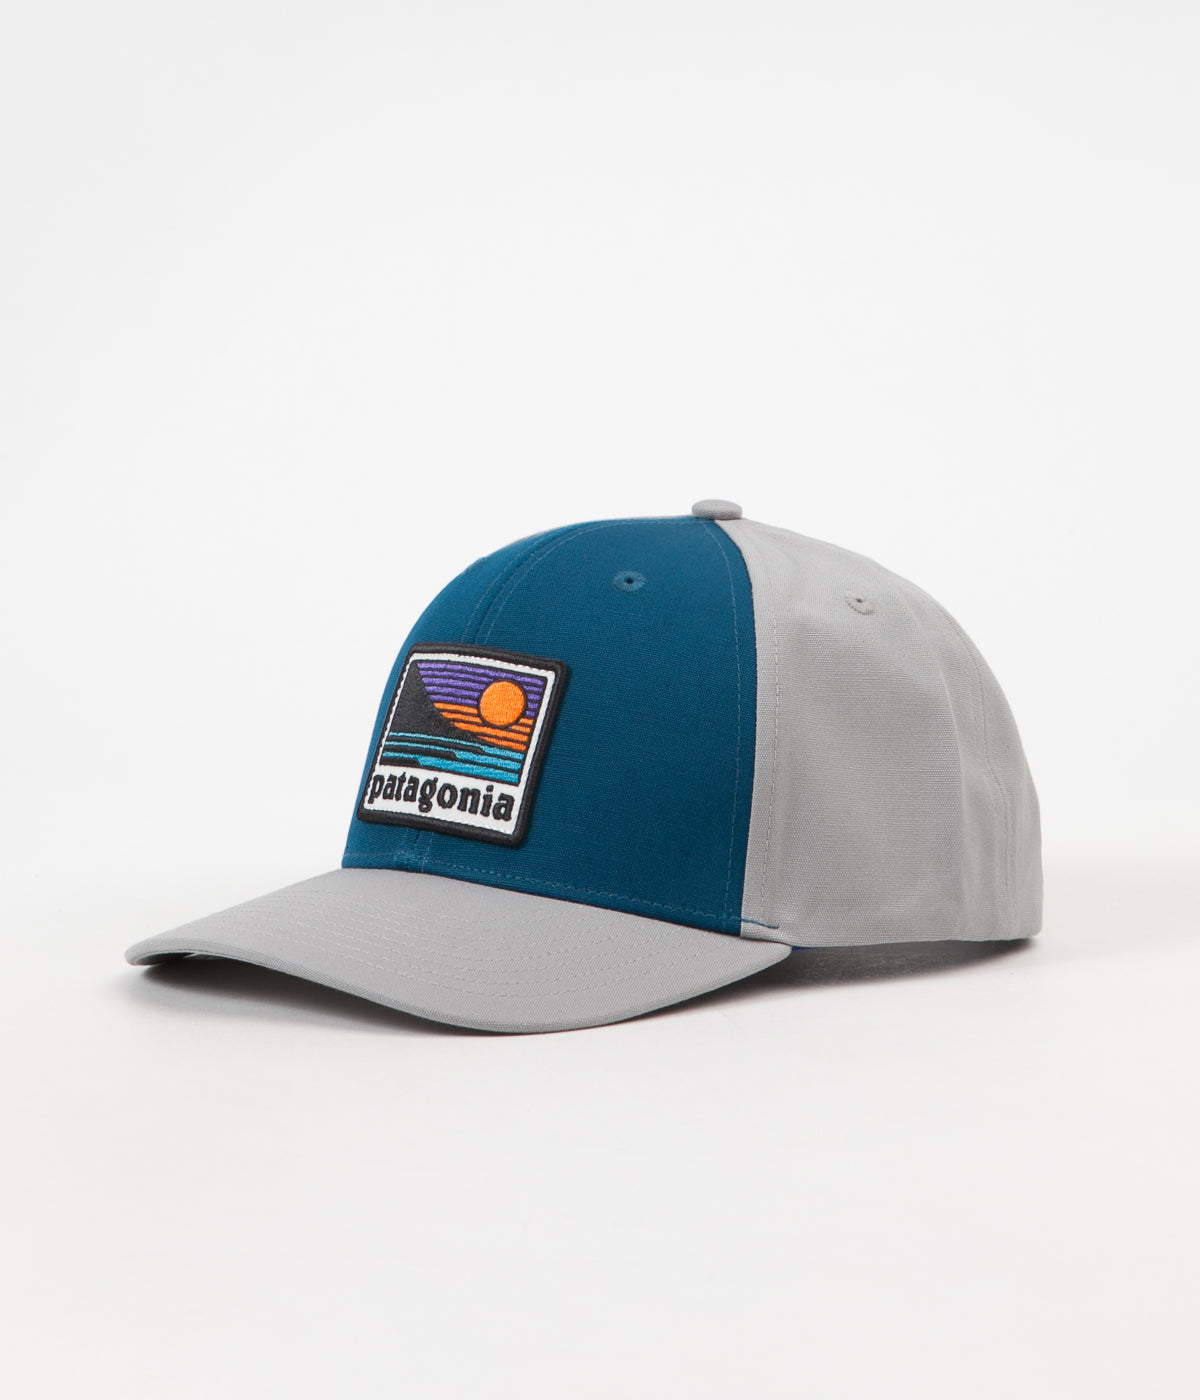 df0eb050a0 Patagonia Up   Out Roger That Hat - Big Sur Blue